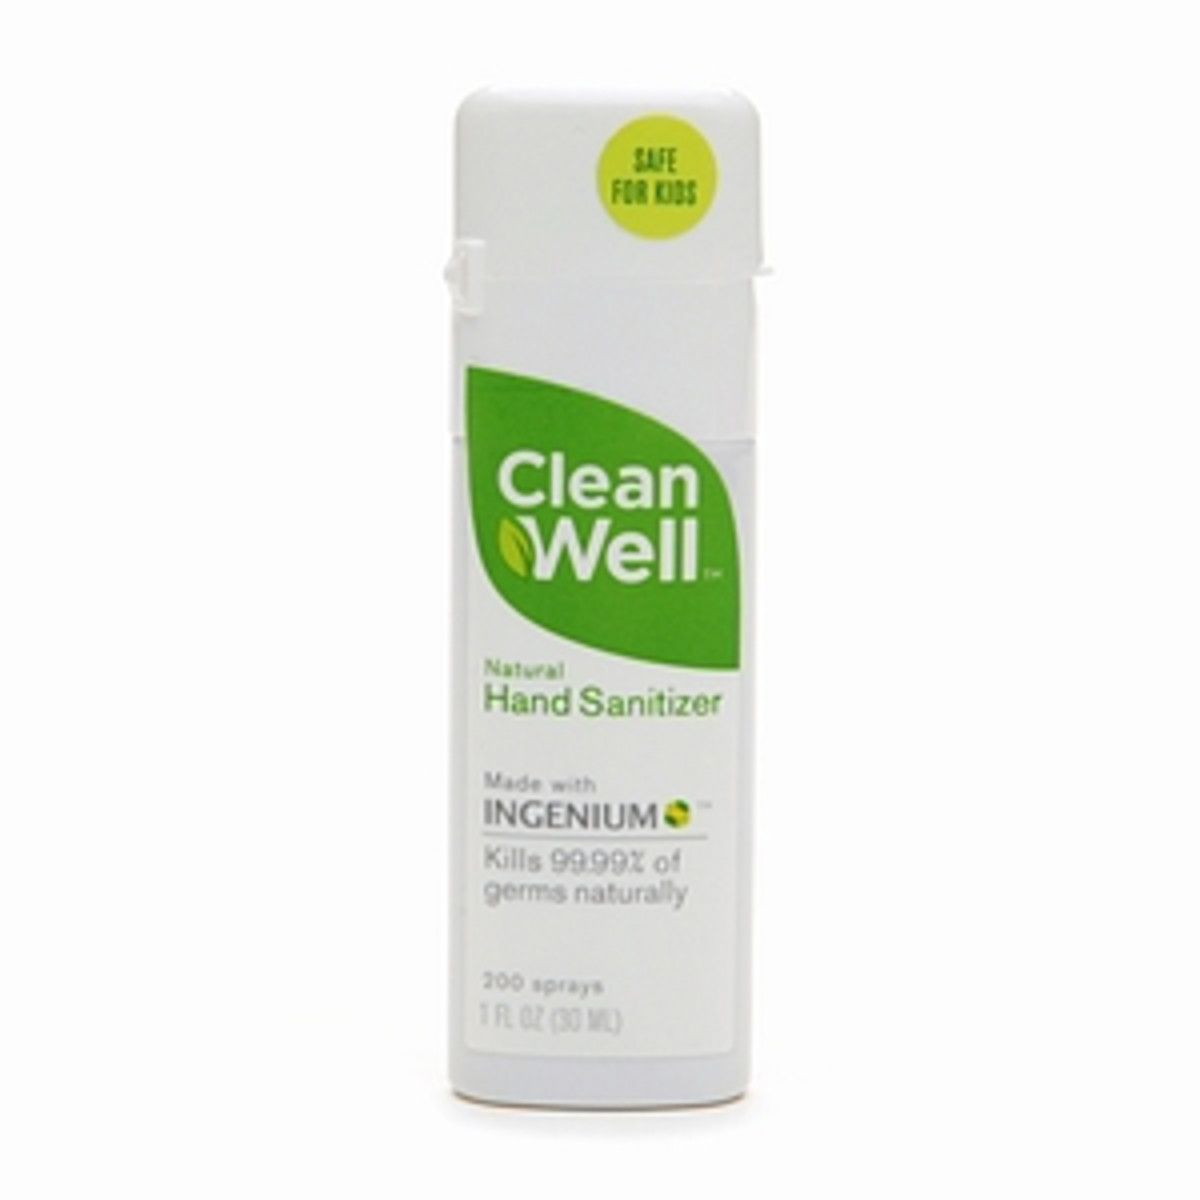 Cleanwell All Natural Hand Sanitizer